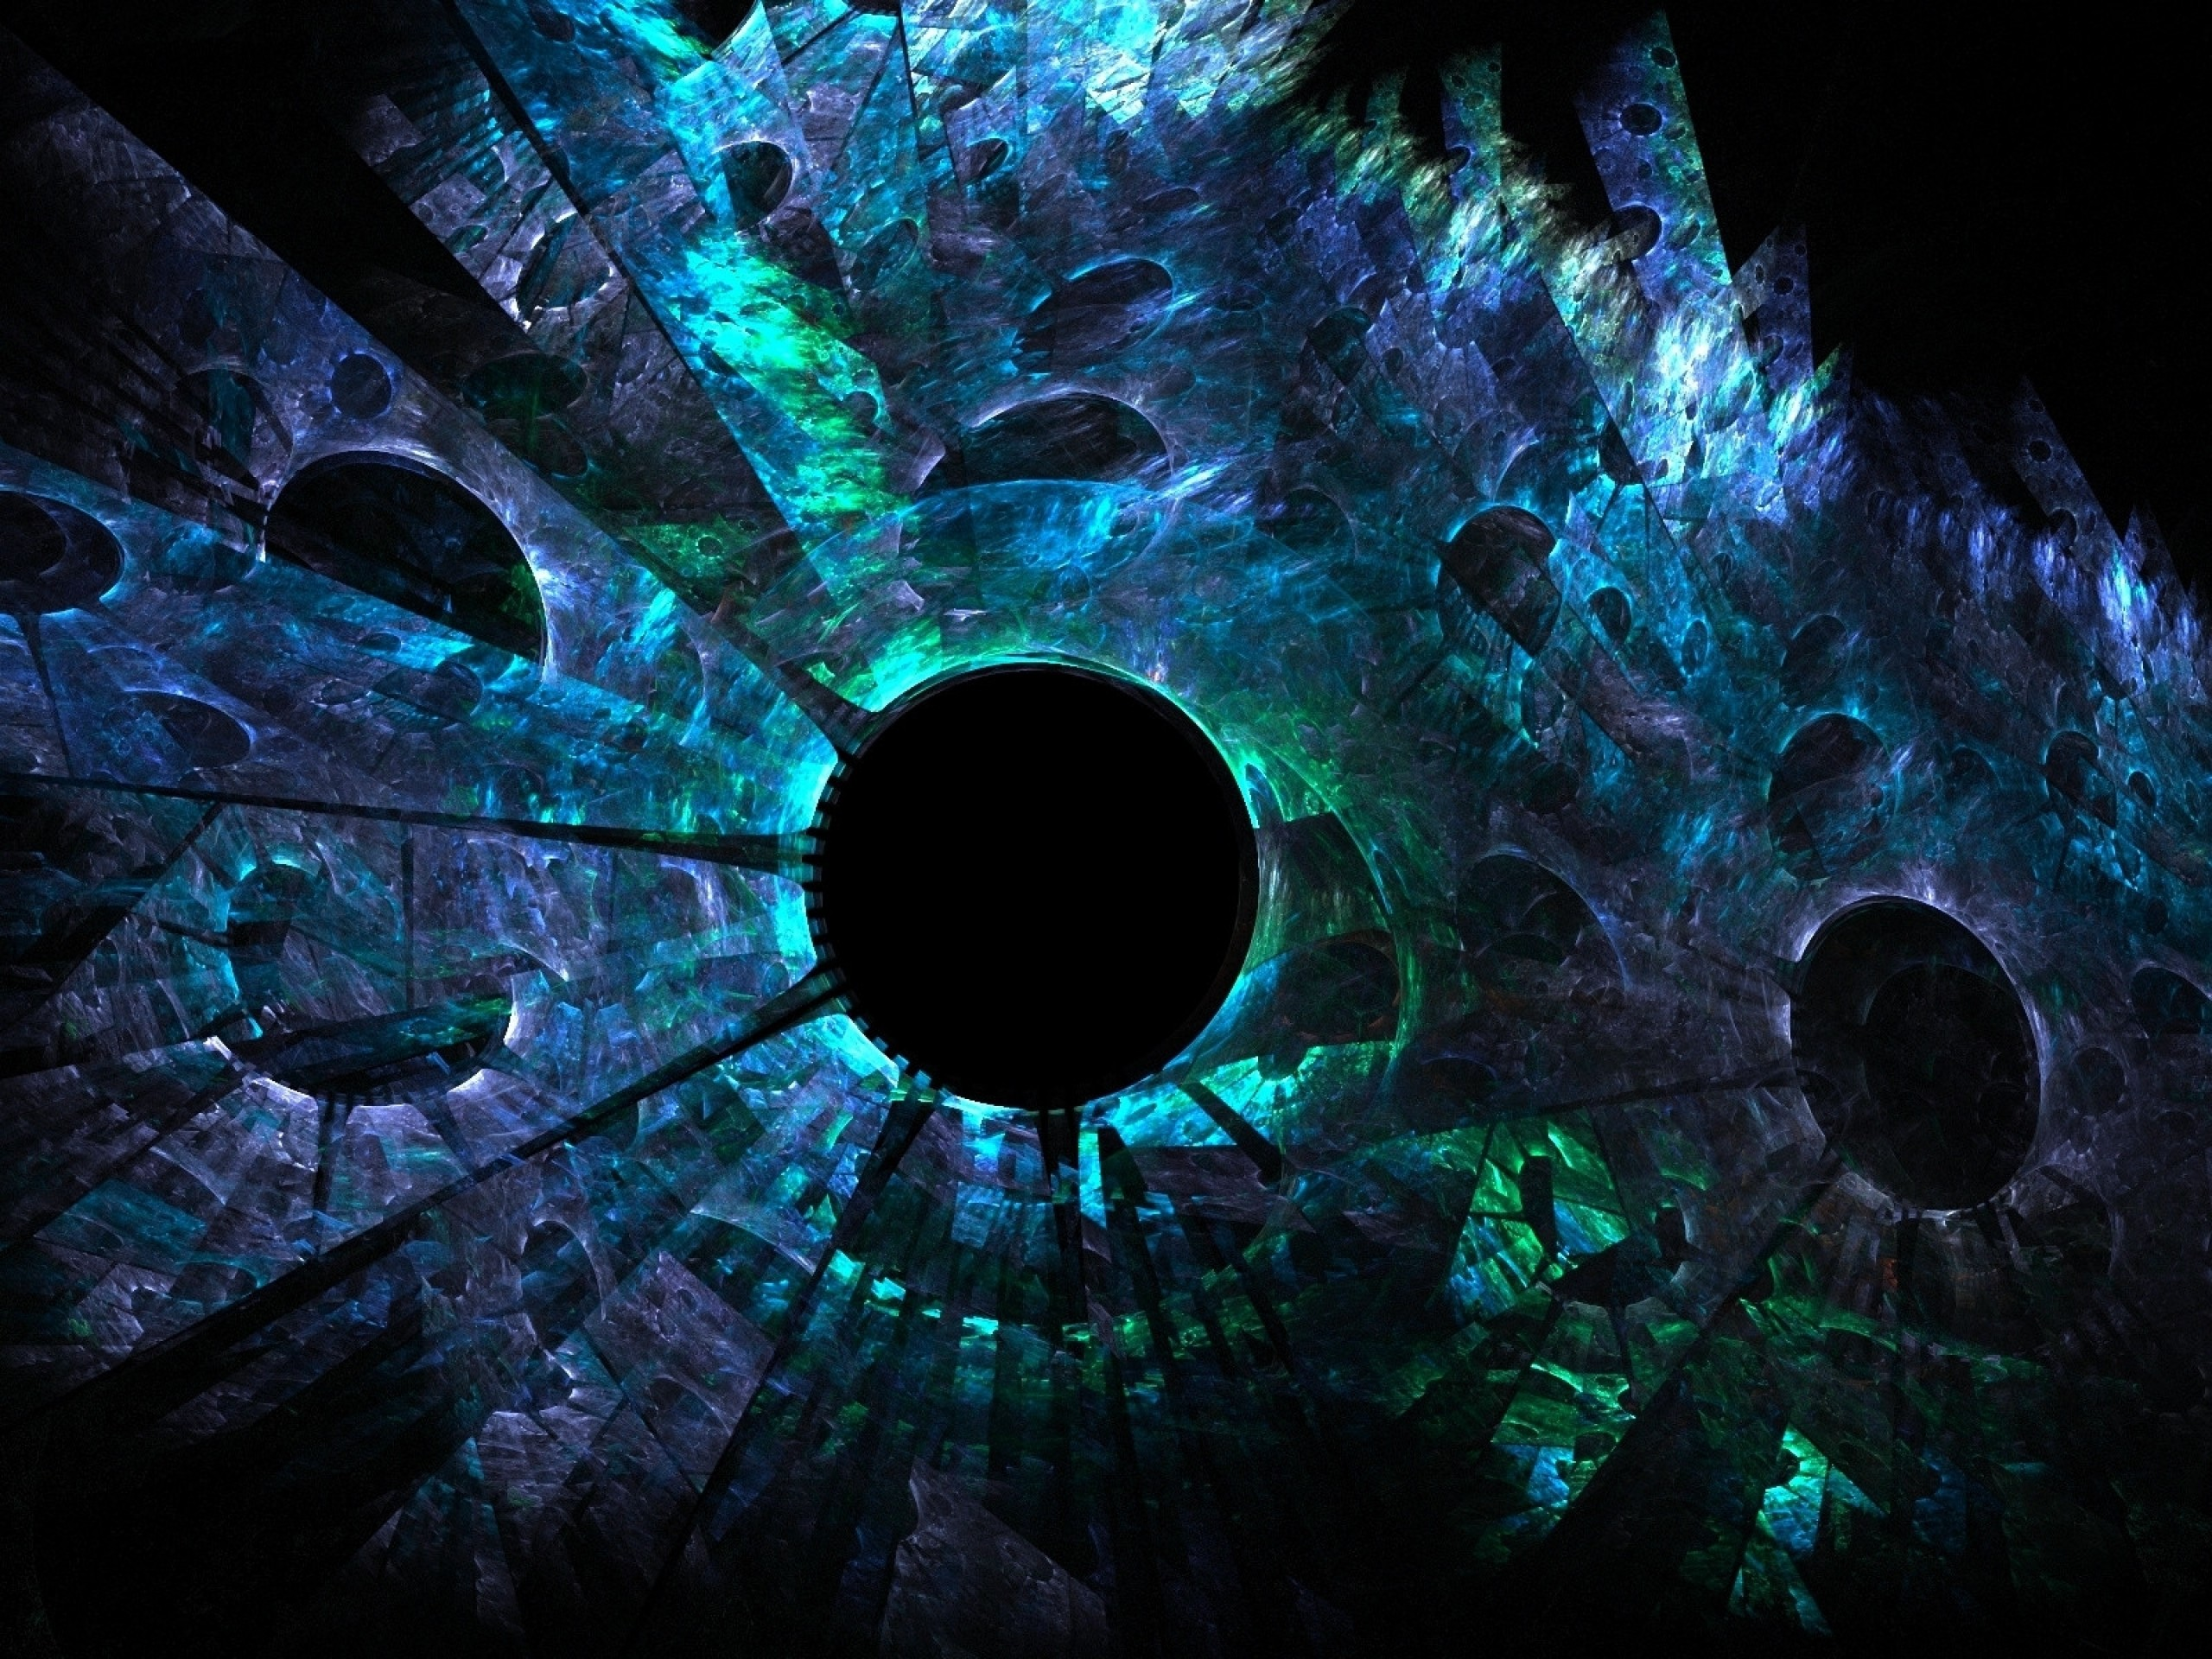 Res: 2560x1920, wallpaper wiki free black hole photo download pic